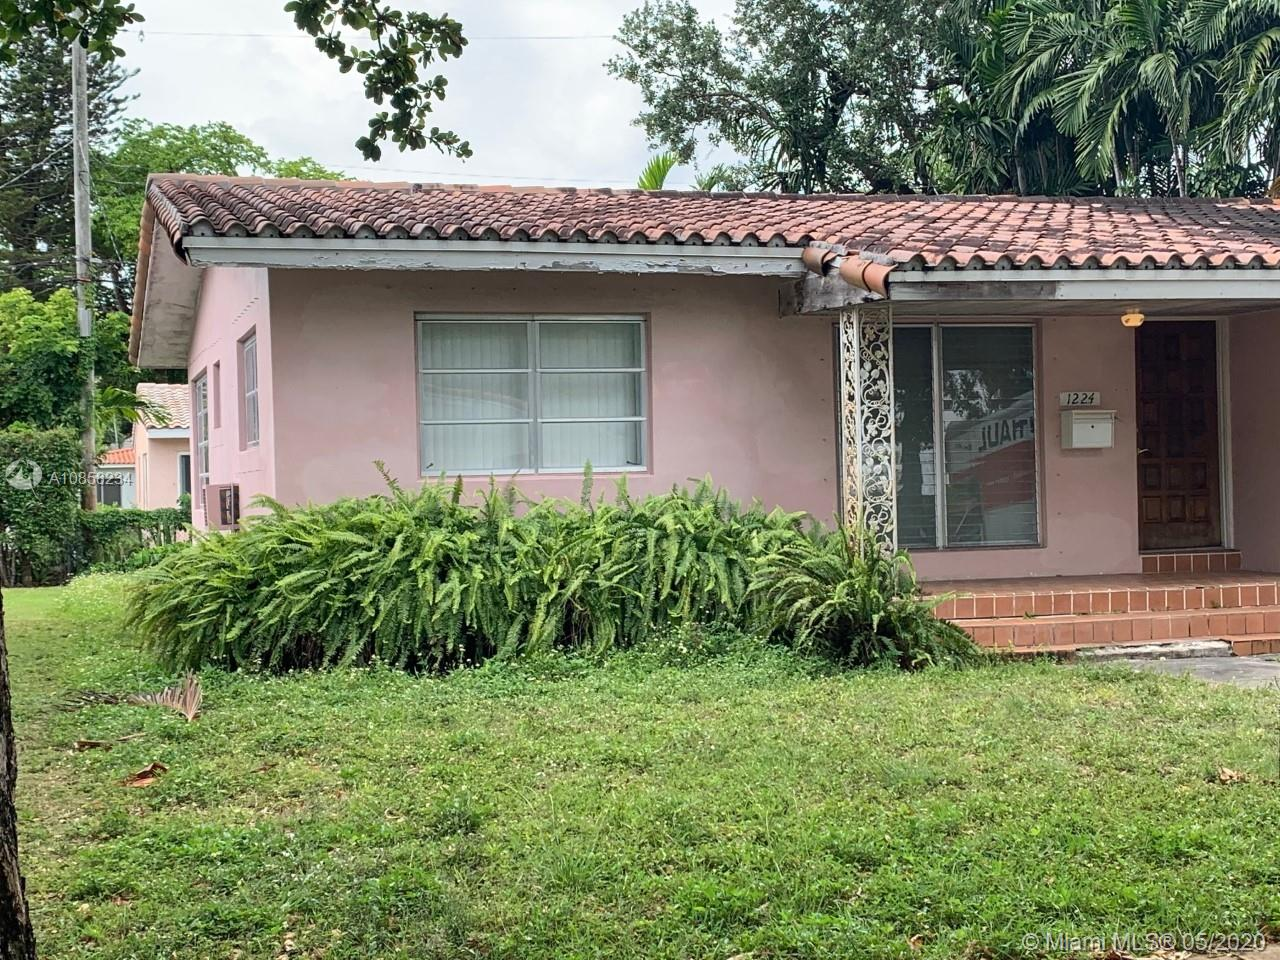 1224 Aguila Ave, Coral Gables, Florida 33134, 2 Bedrooms Bedrooms, ,2 BathroomsBathrooms,Residential,For Sale,1224 Aguila Ave,A10858234